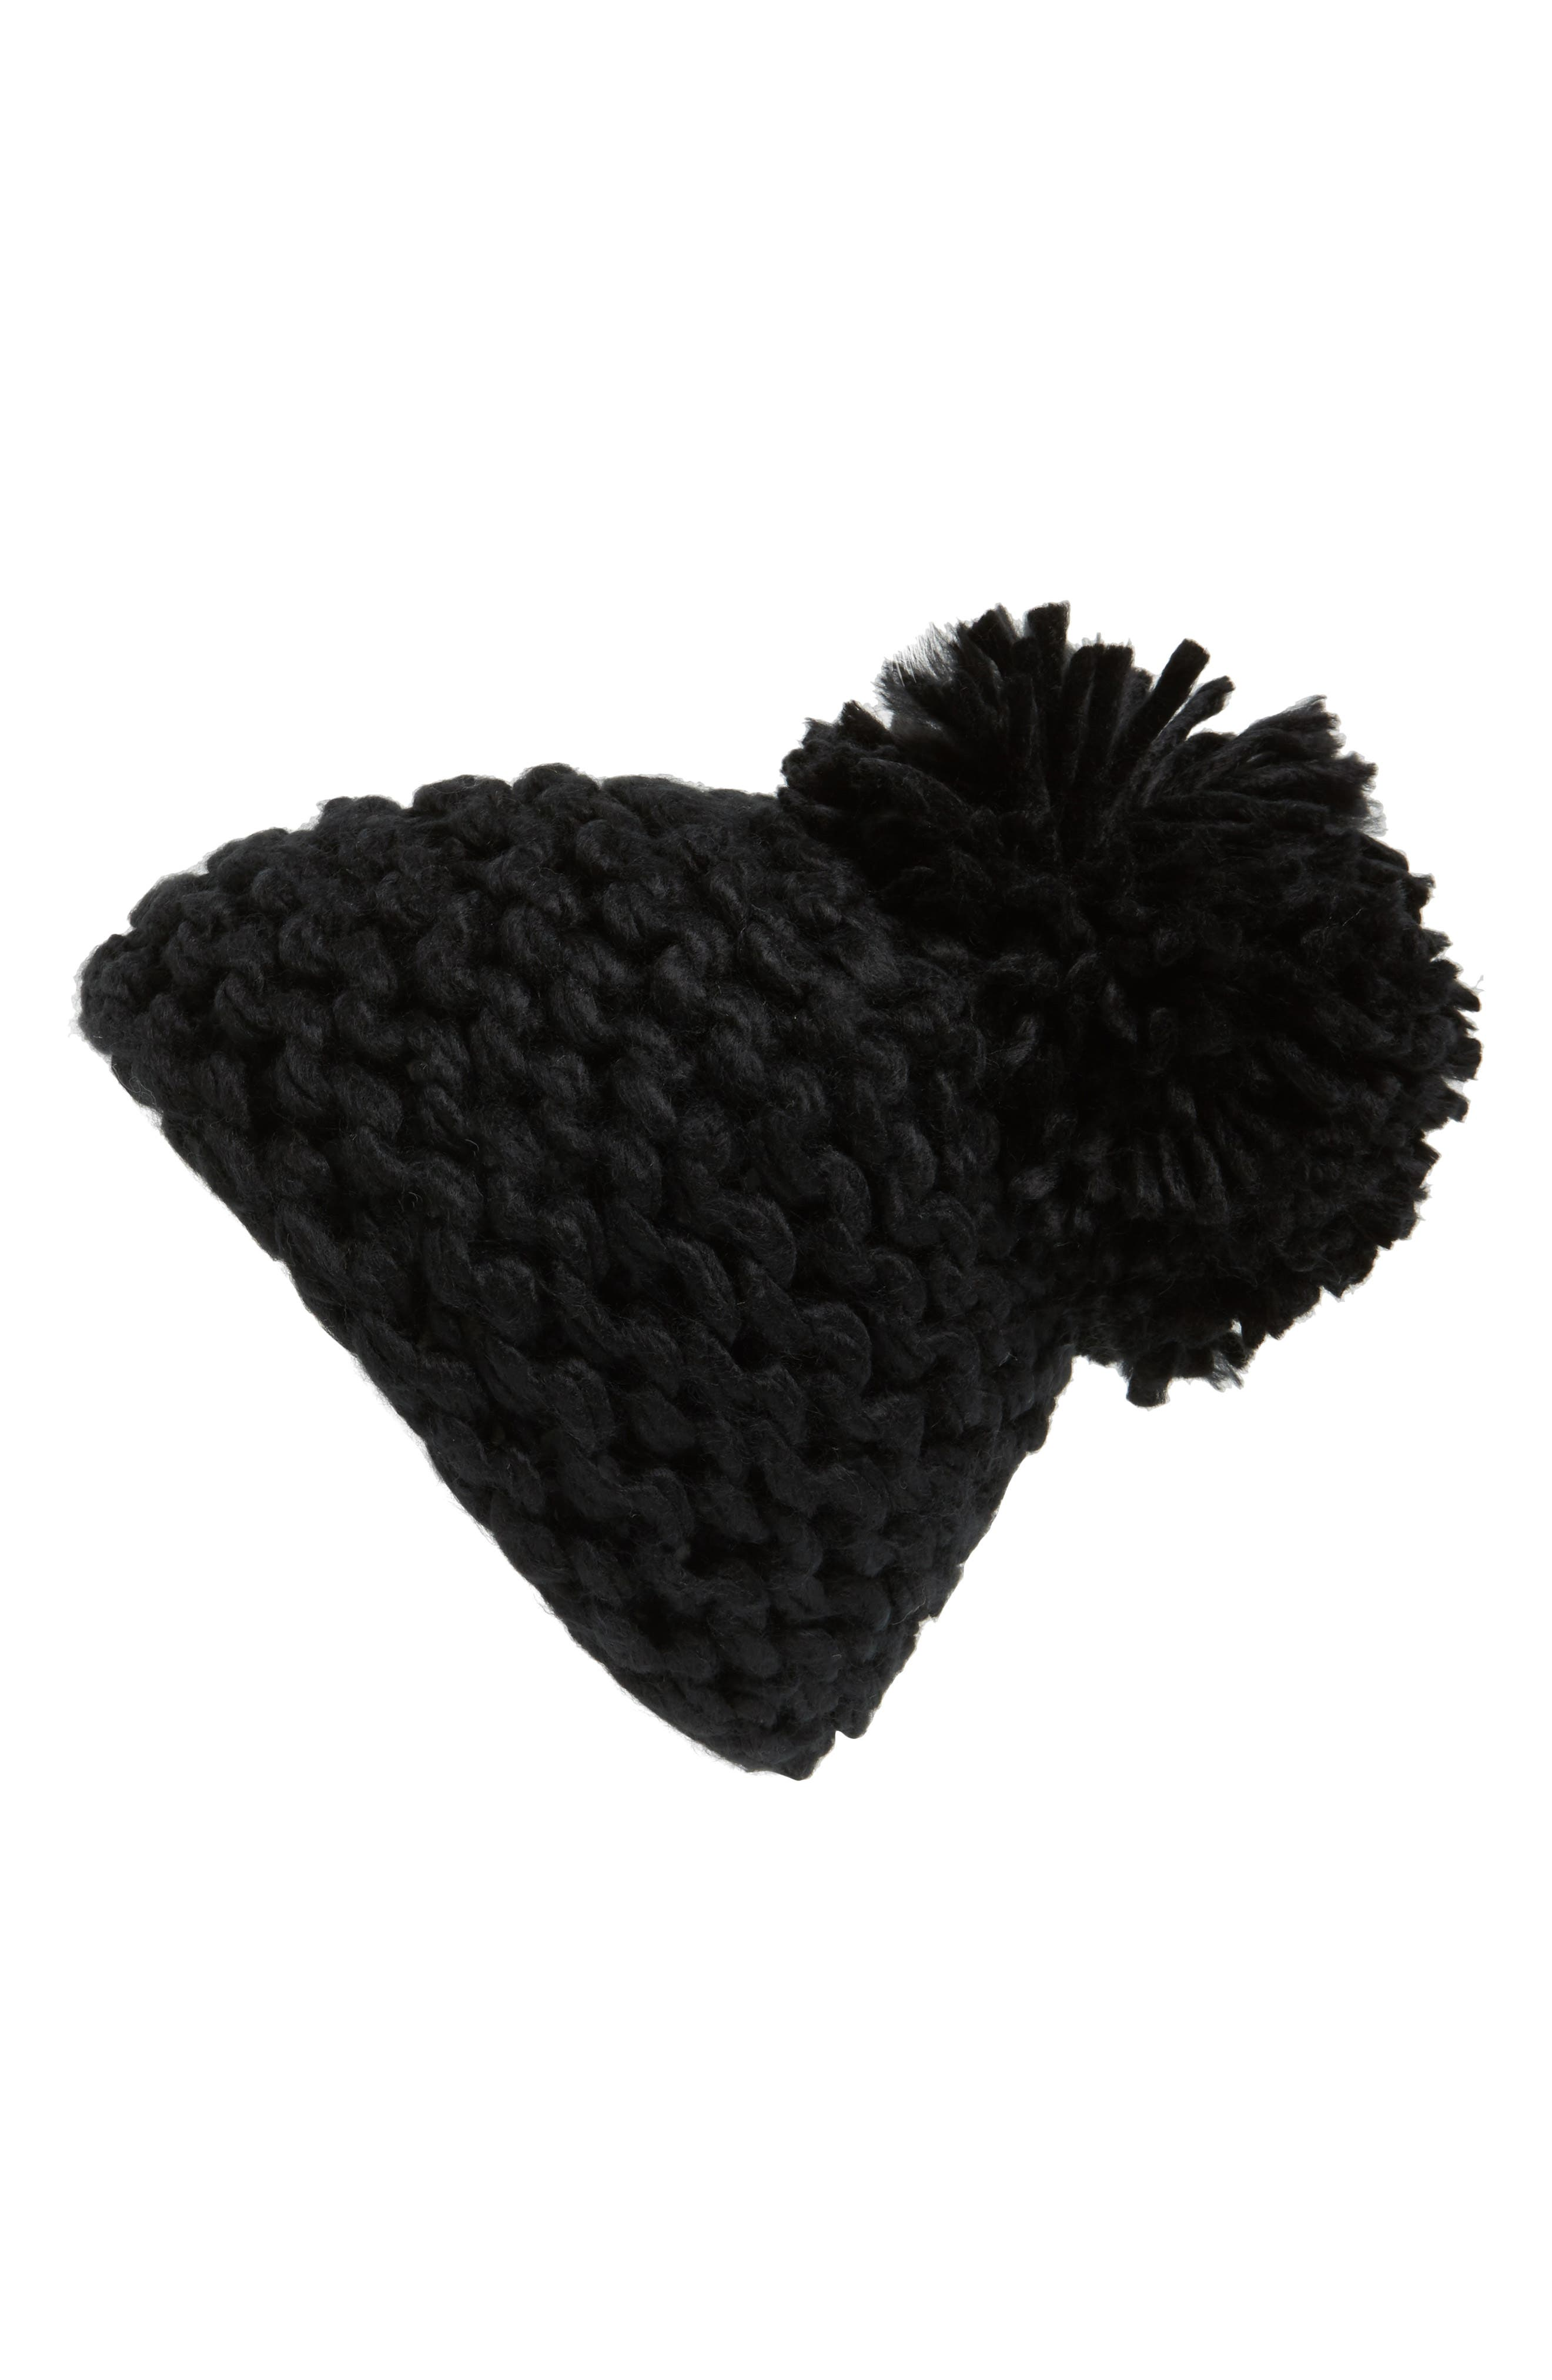 BCBGENERATION, Knit Pompom Beanie, Alternate thumbnail 2, color, 001